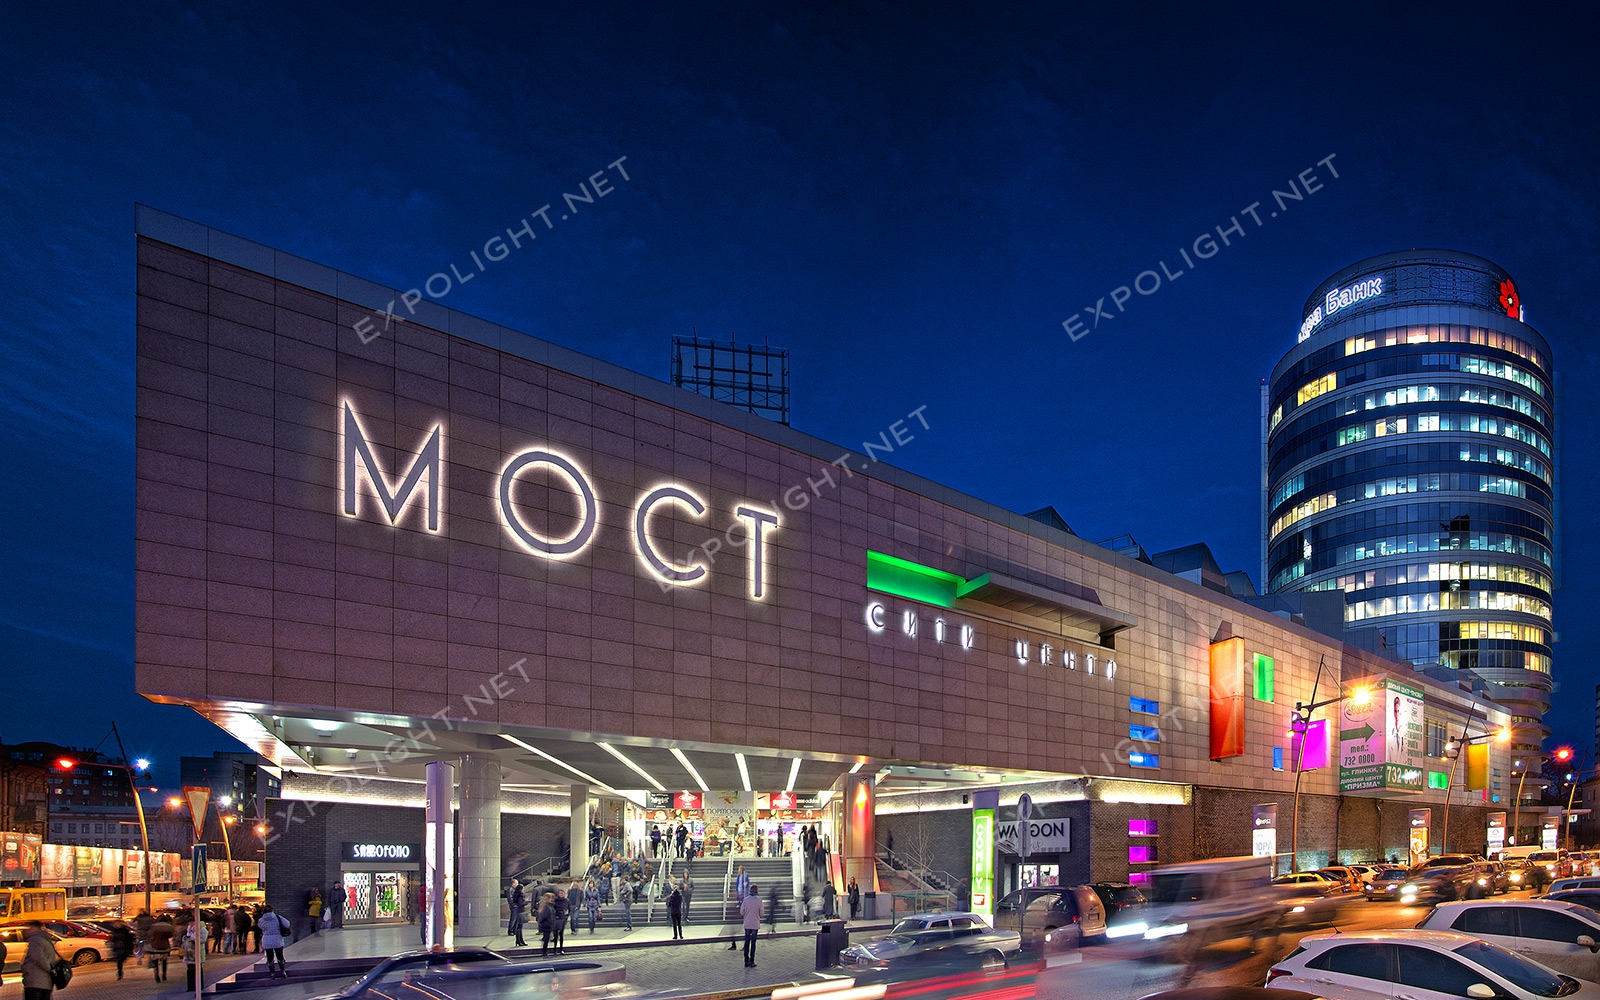 Мост-Сити Центр, Most-Sity Centre, Эксполайт, Expolight